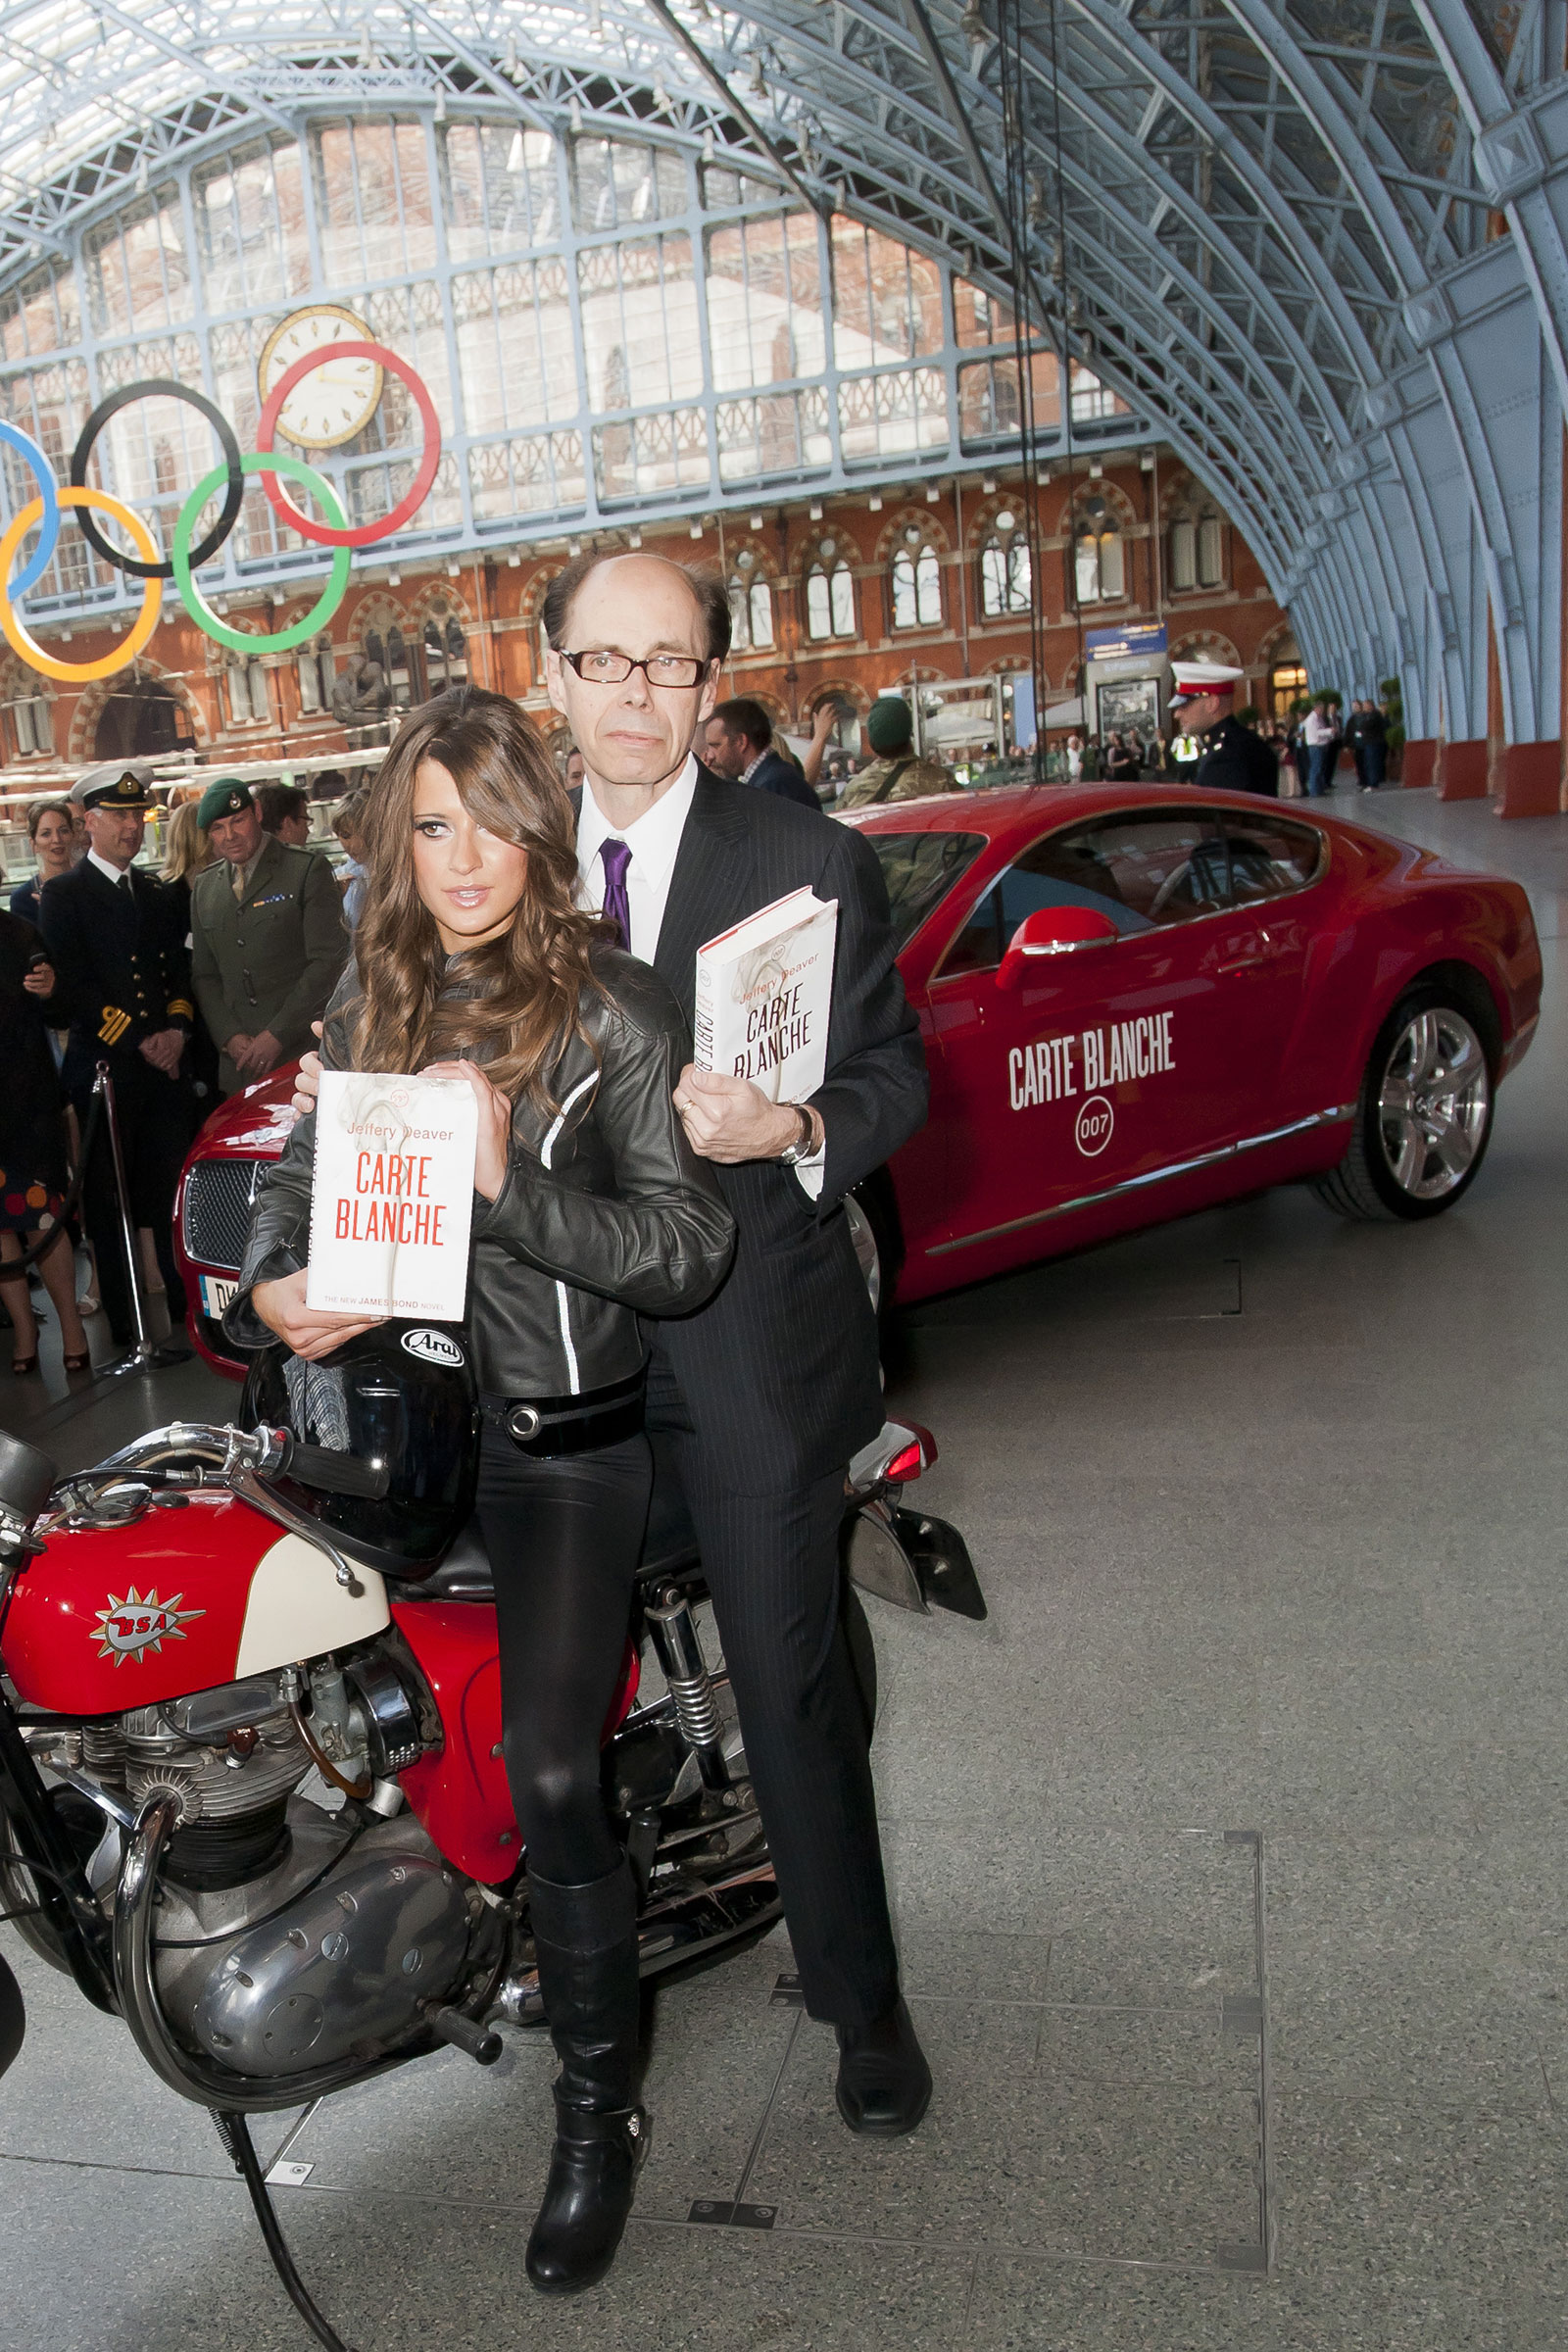 Launch of New James Bond Book, Carte Blanche, Lifts the Roof at St Pancras International